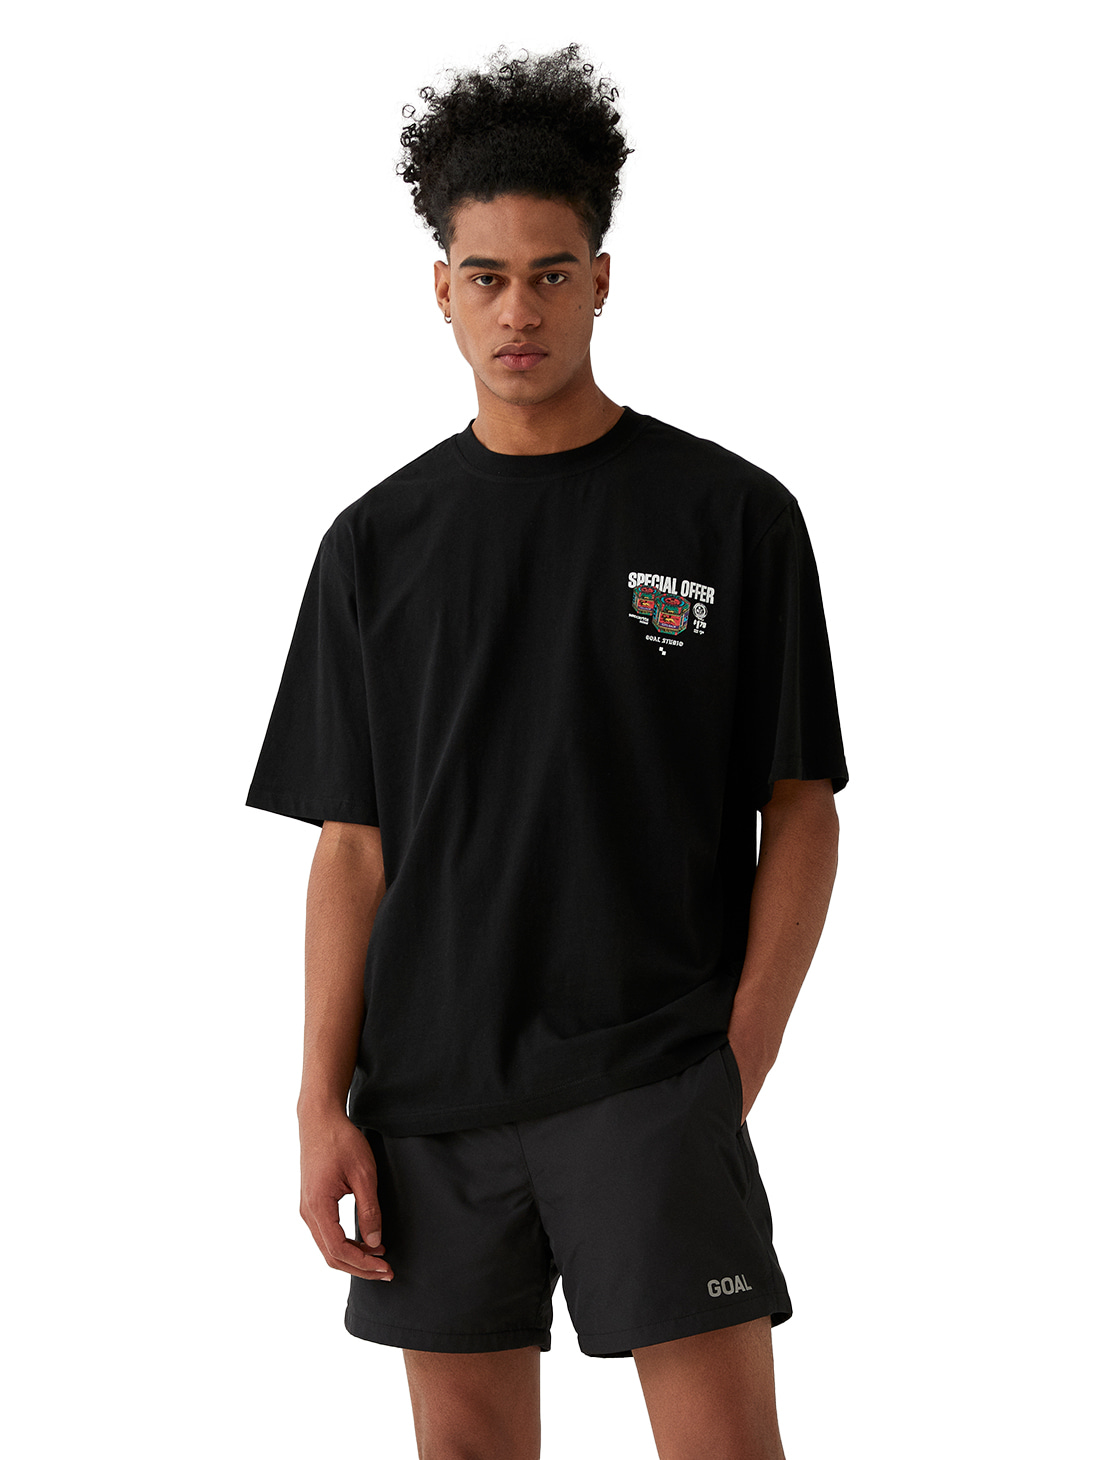 GOALSTUDIO MC BALM LOGO GRAPHIC TEE - BLACK